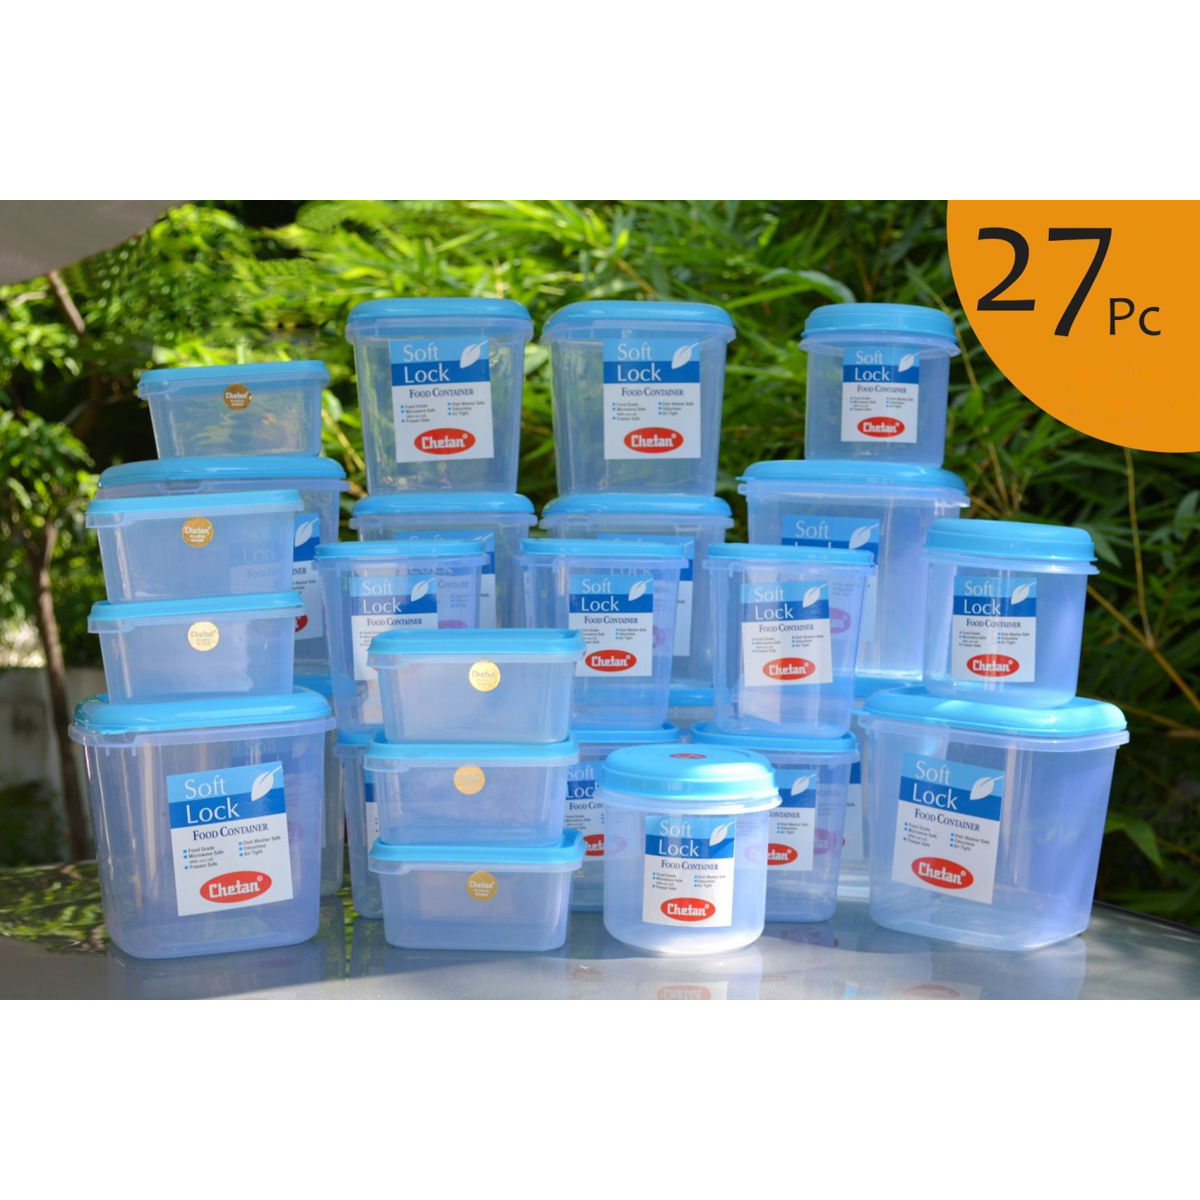 kitchen storage containers buy online buy chetan set of 27 pcs plastic airtight kitchen storage 8617